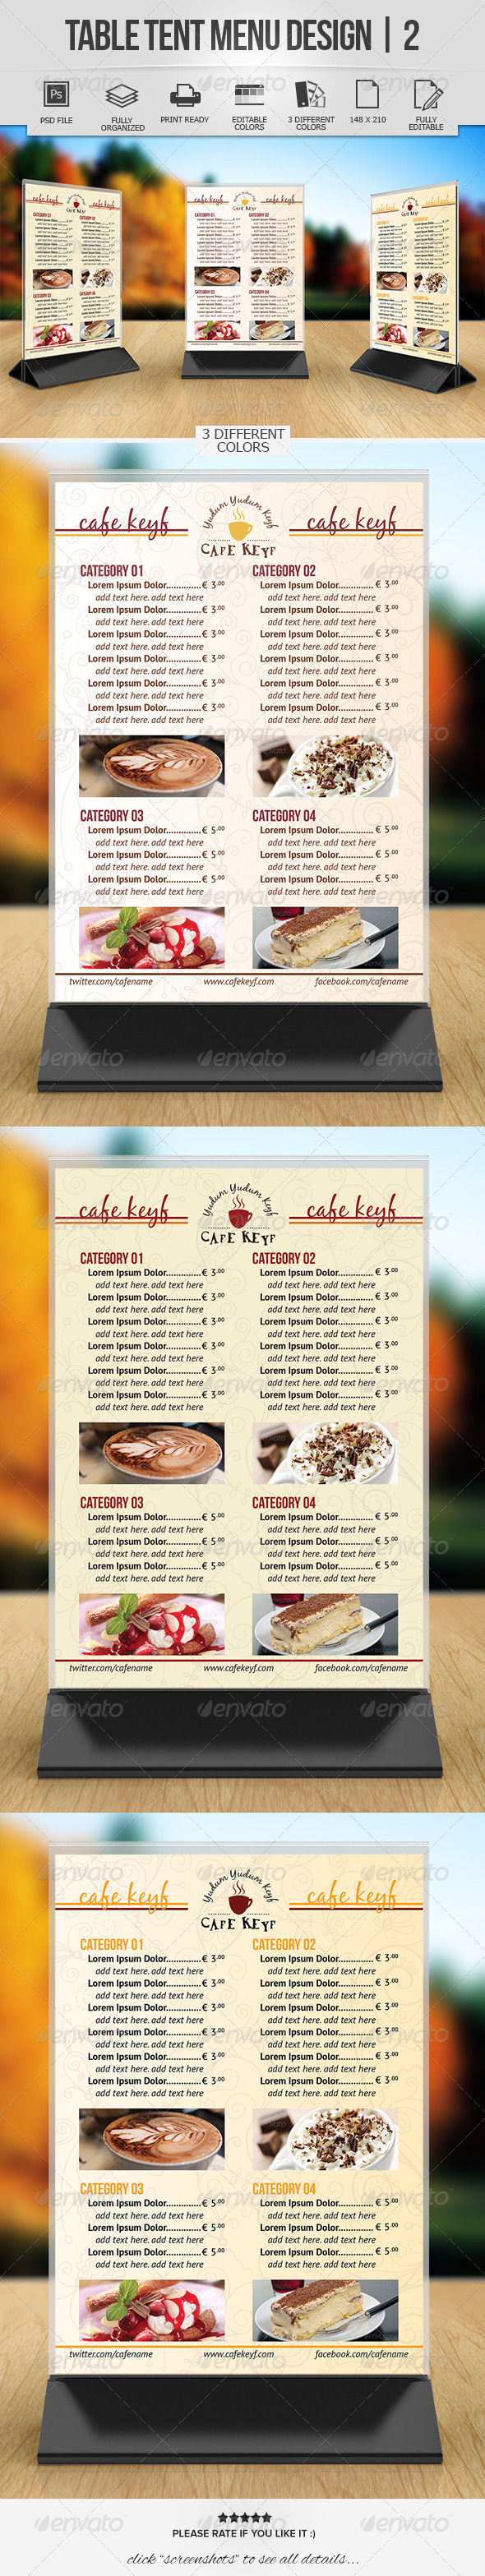 GraphicRiver Table Tent Menu Design 2 7550341